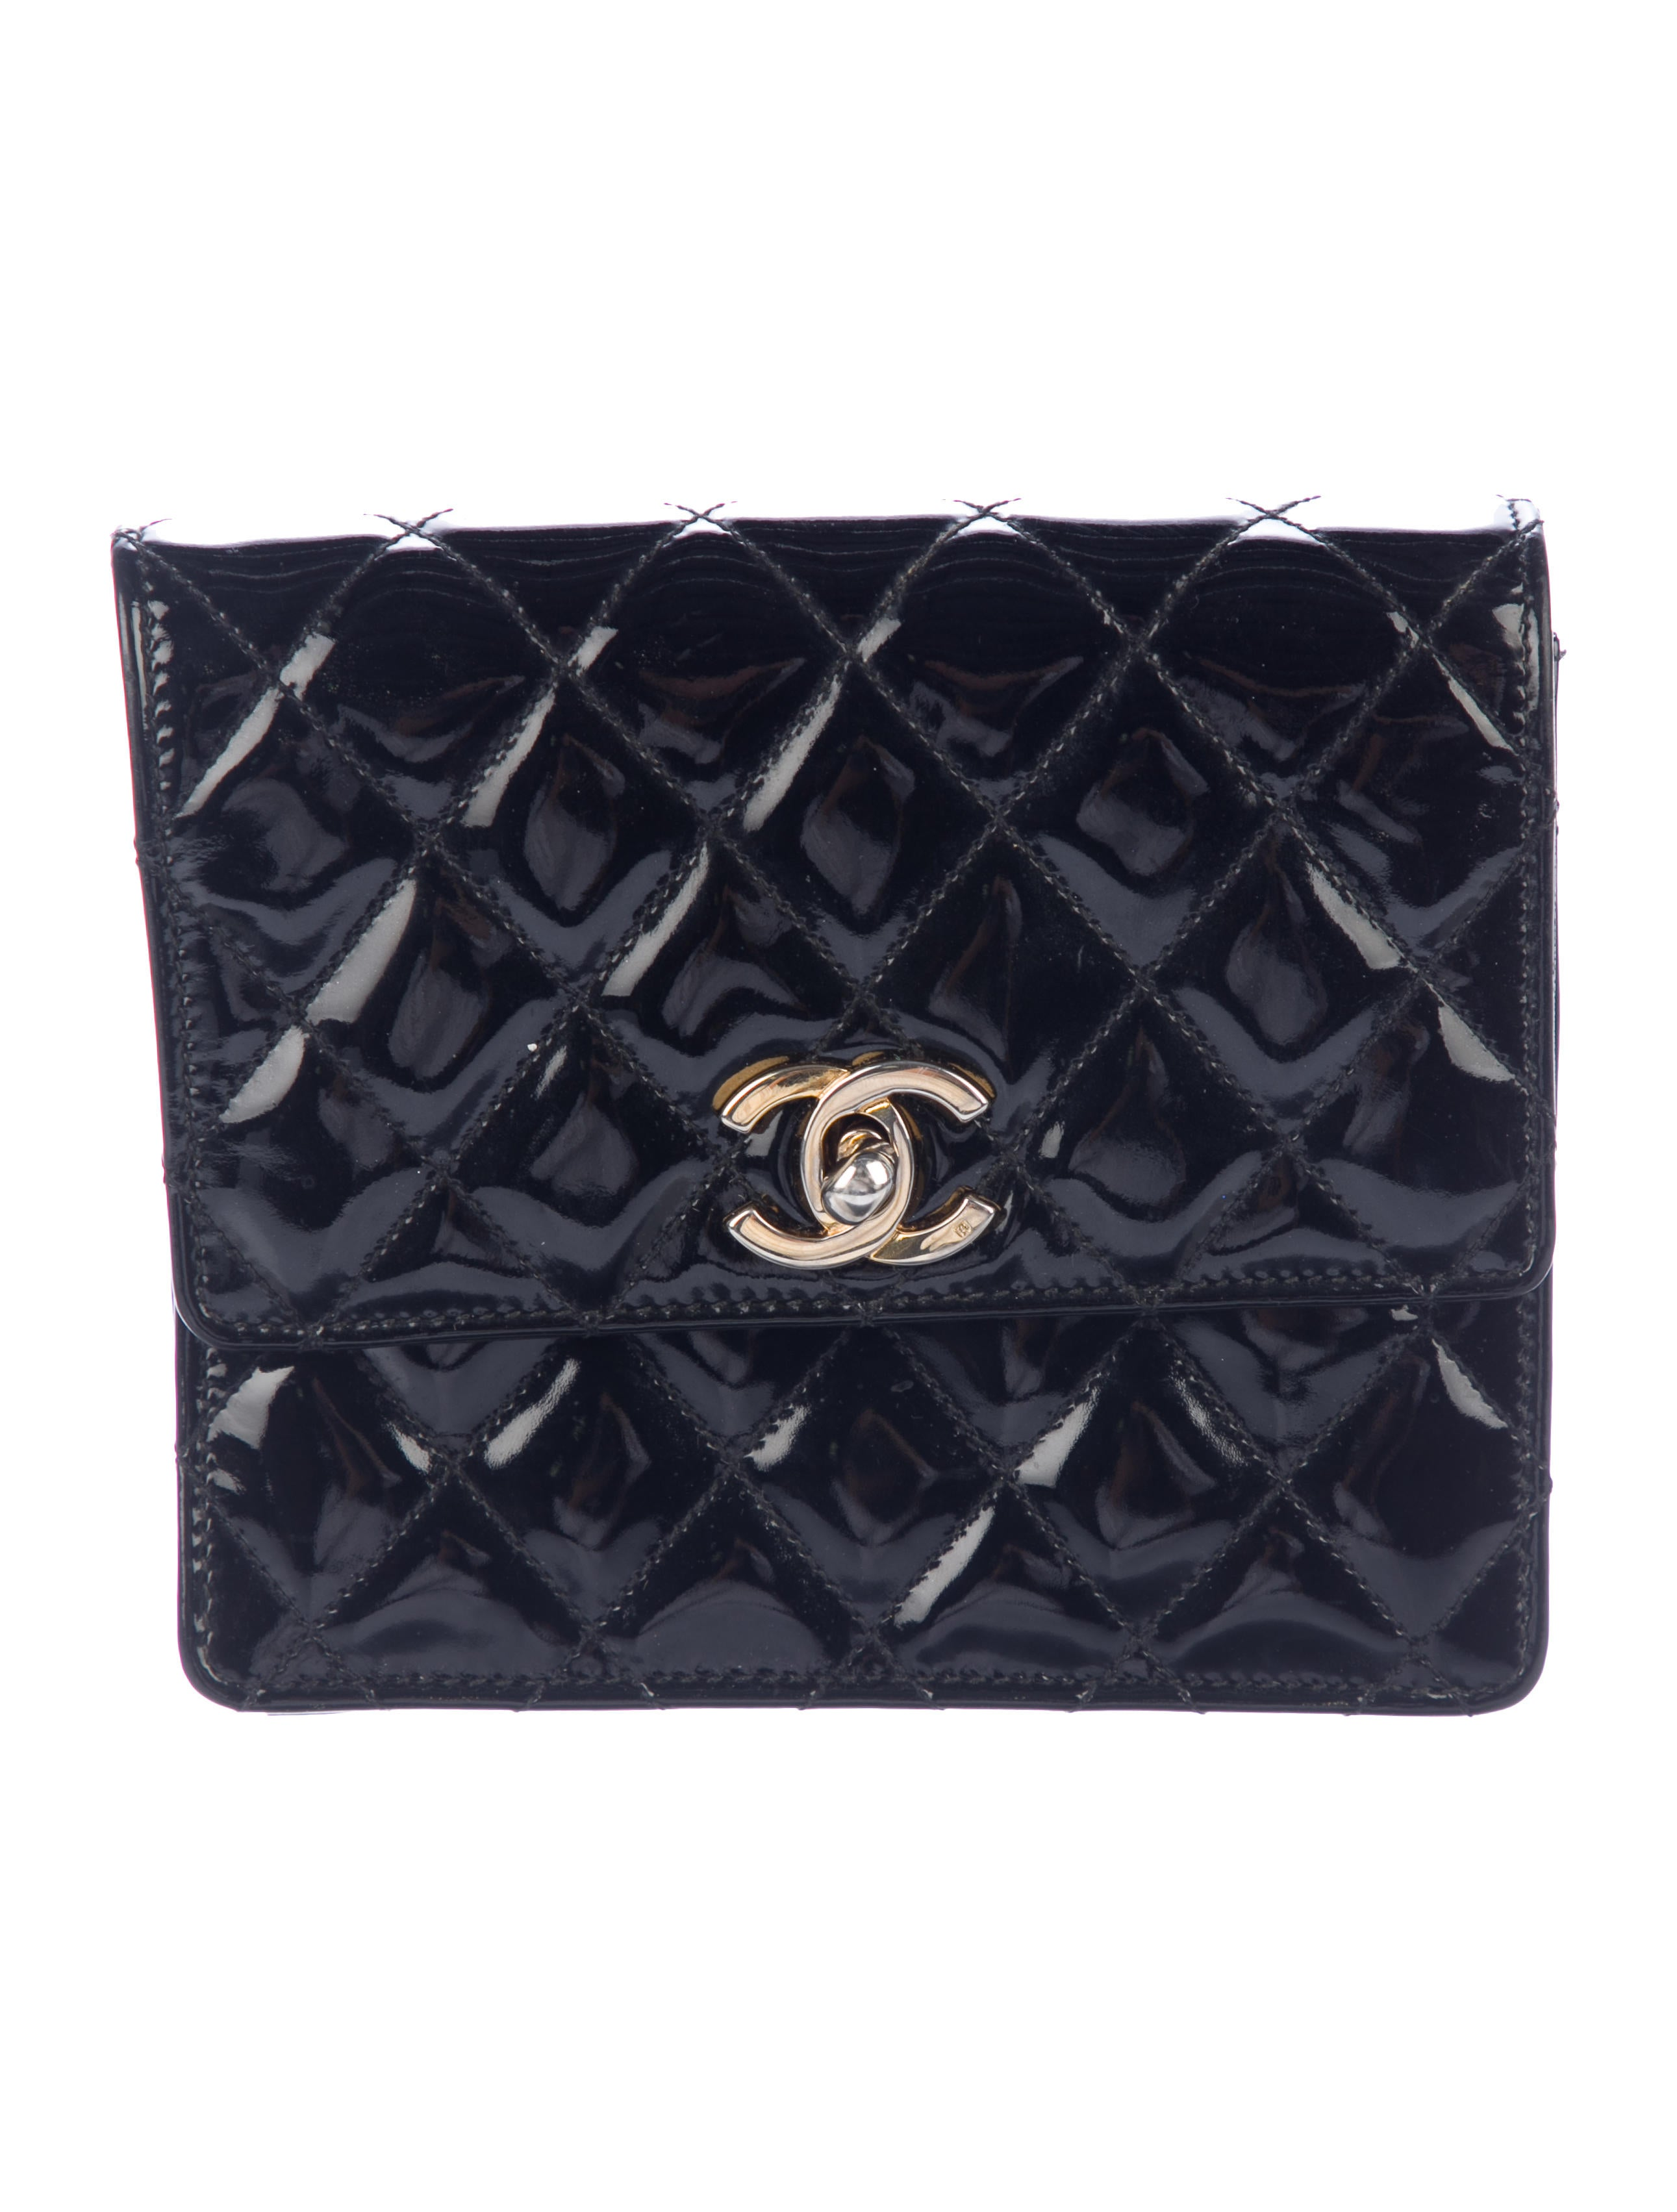 08f95c67bbf4 Chanel Vintage CC Waist Bag - Handbags - CHA276073 | The RealReal